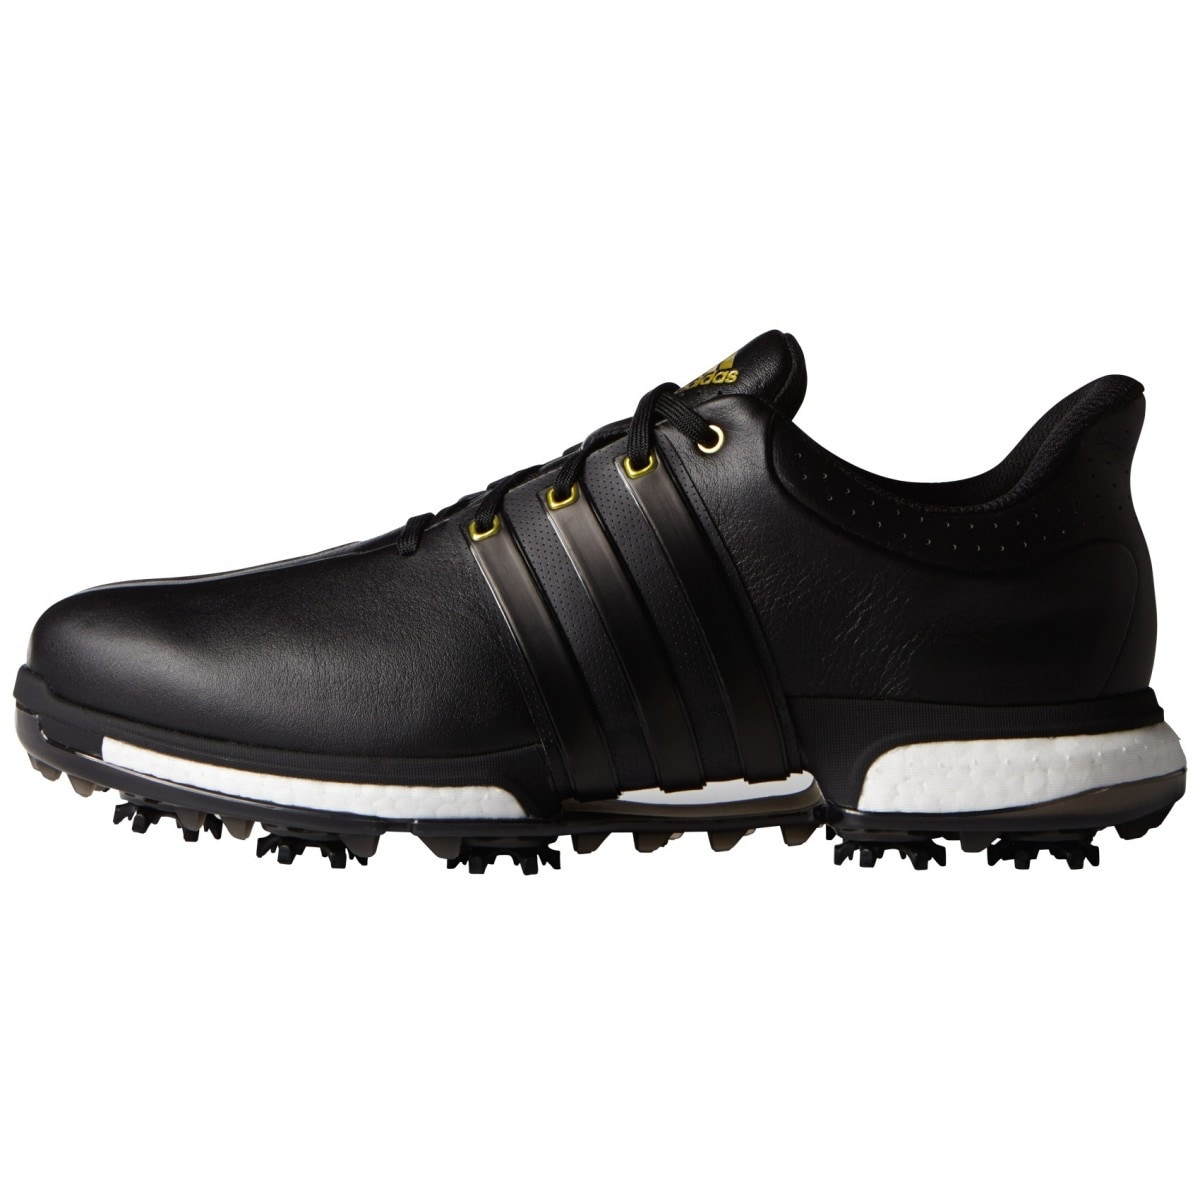 a16f453b91a249 Buy Adidas Men's Golf Shoes Online at Overstock | Our Best Golf Shoes Deals